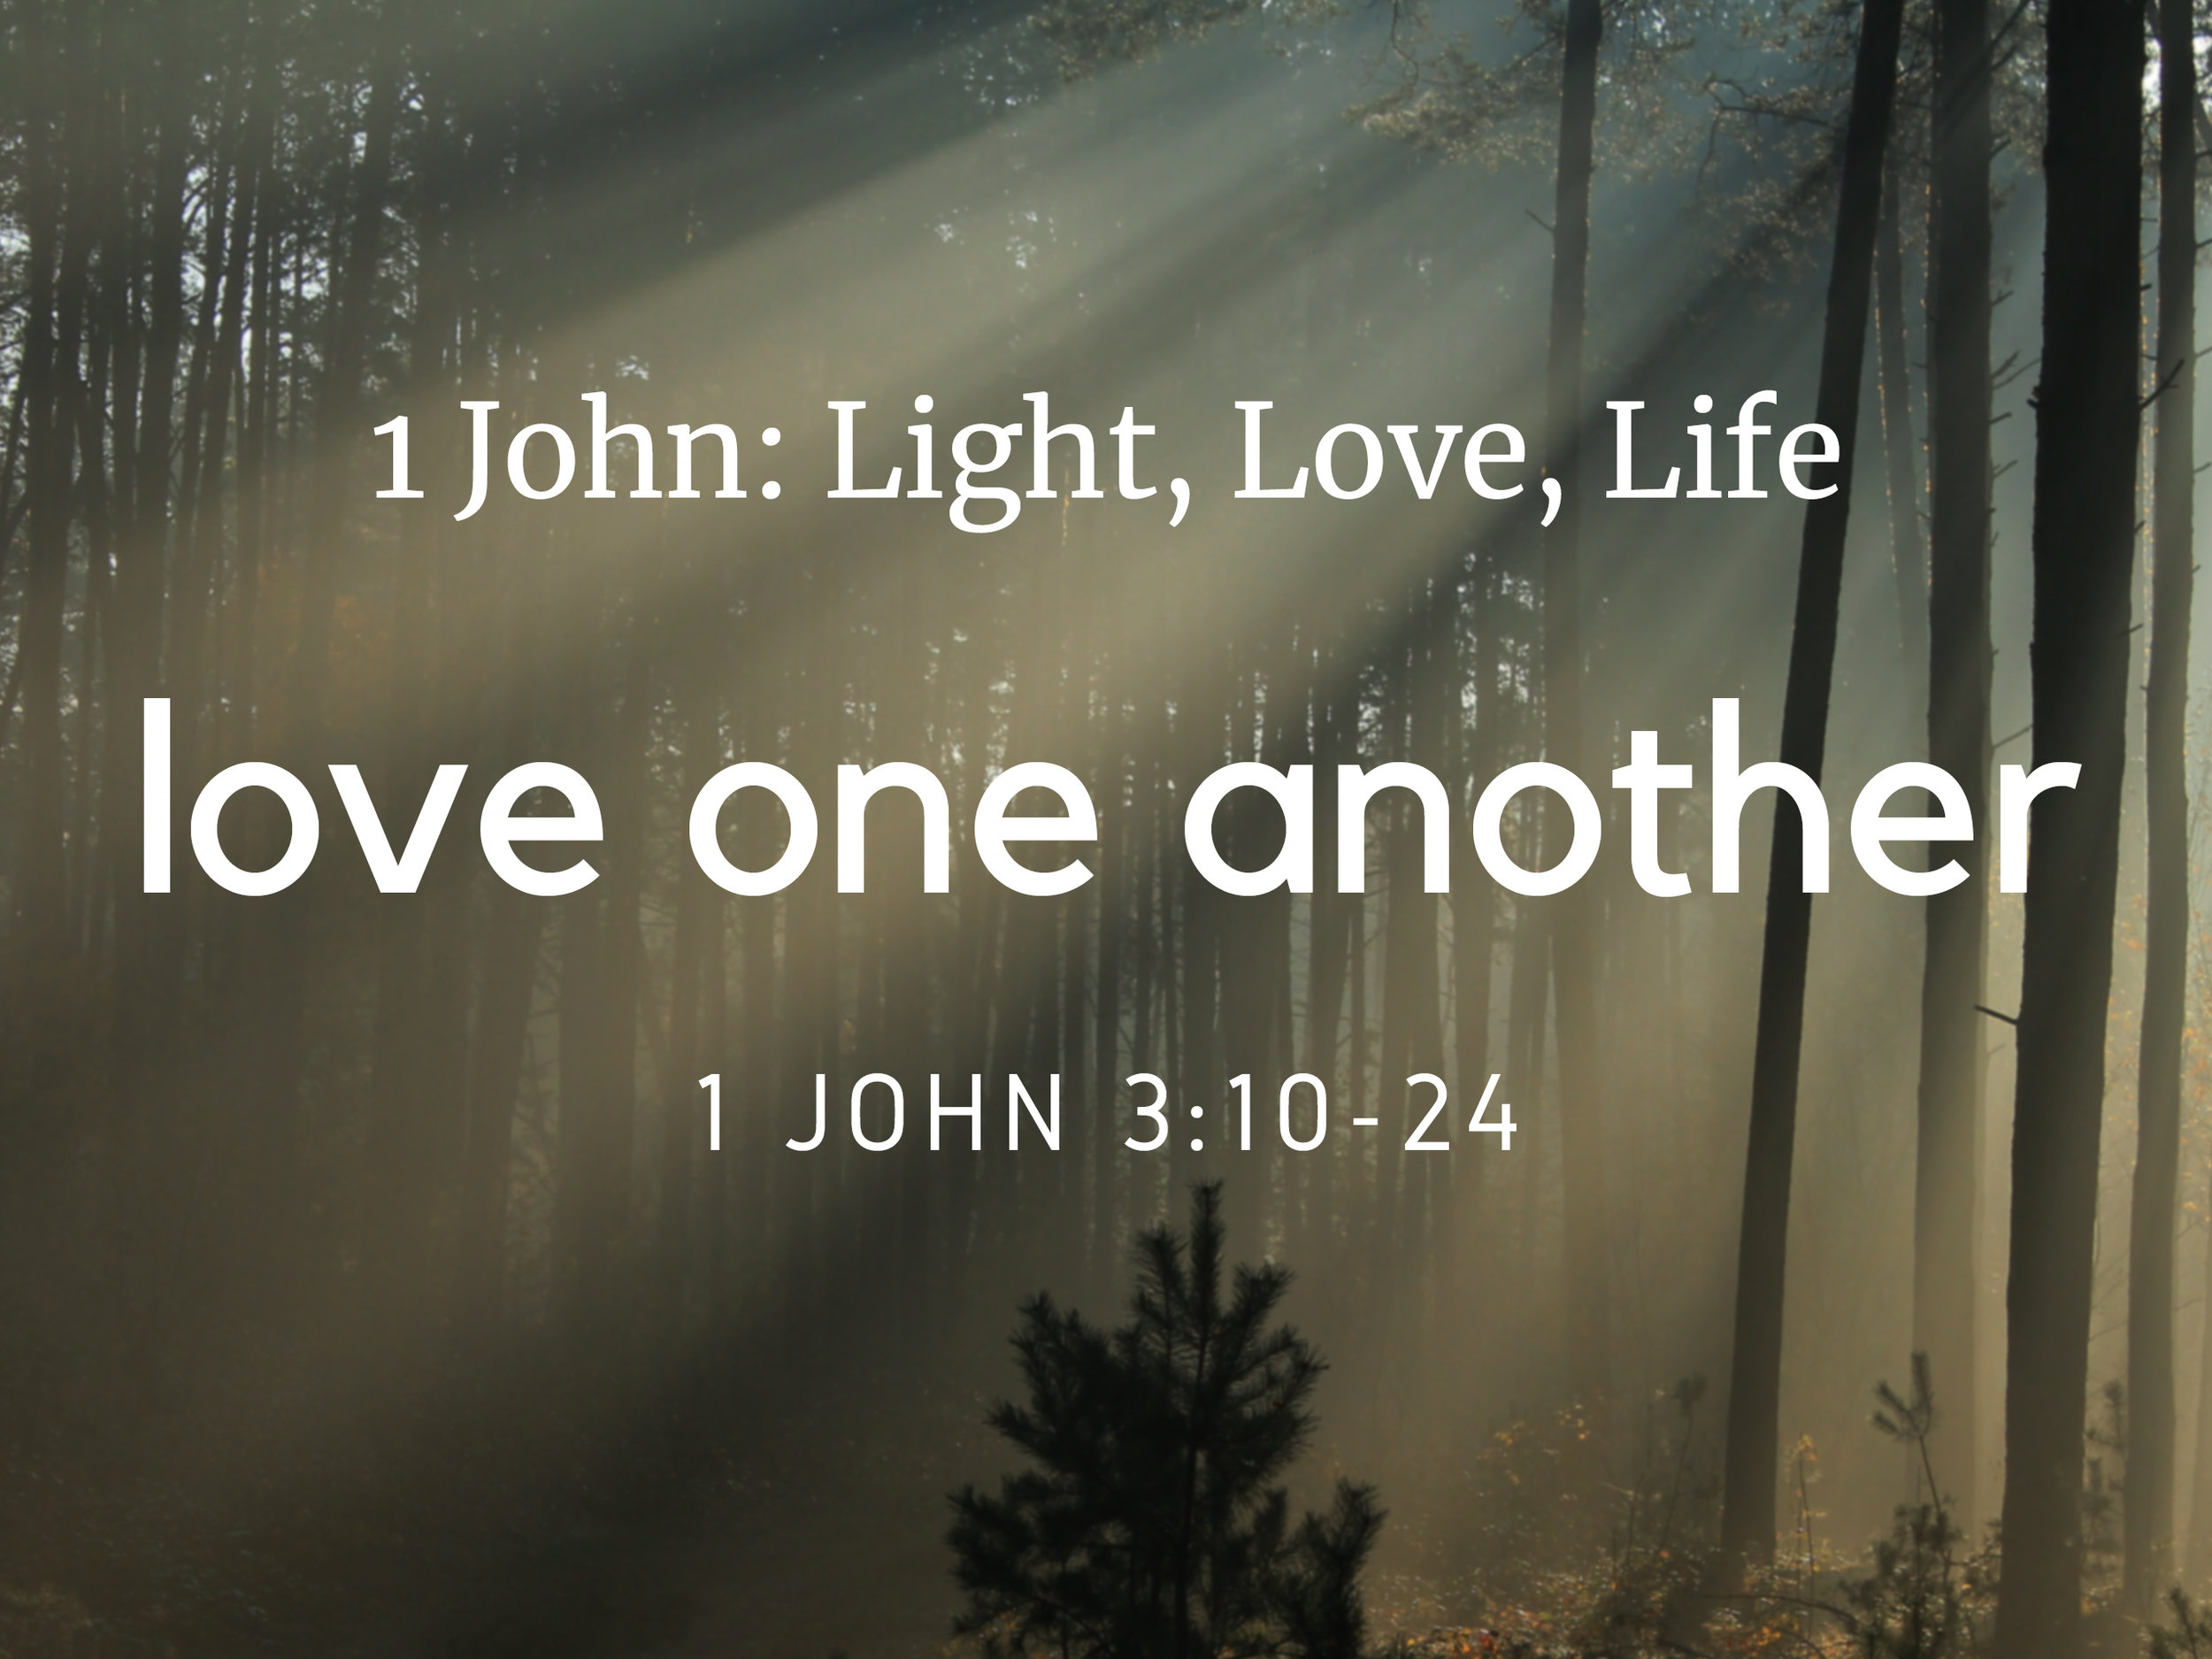 1 John Light Love Life Sermon Slide - Part 2.jpg